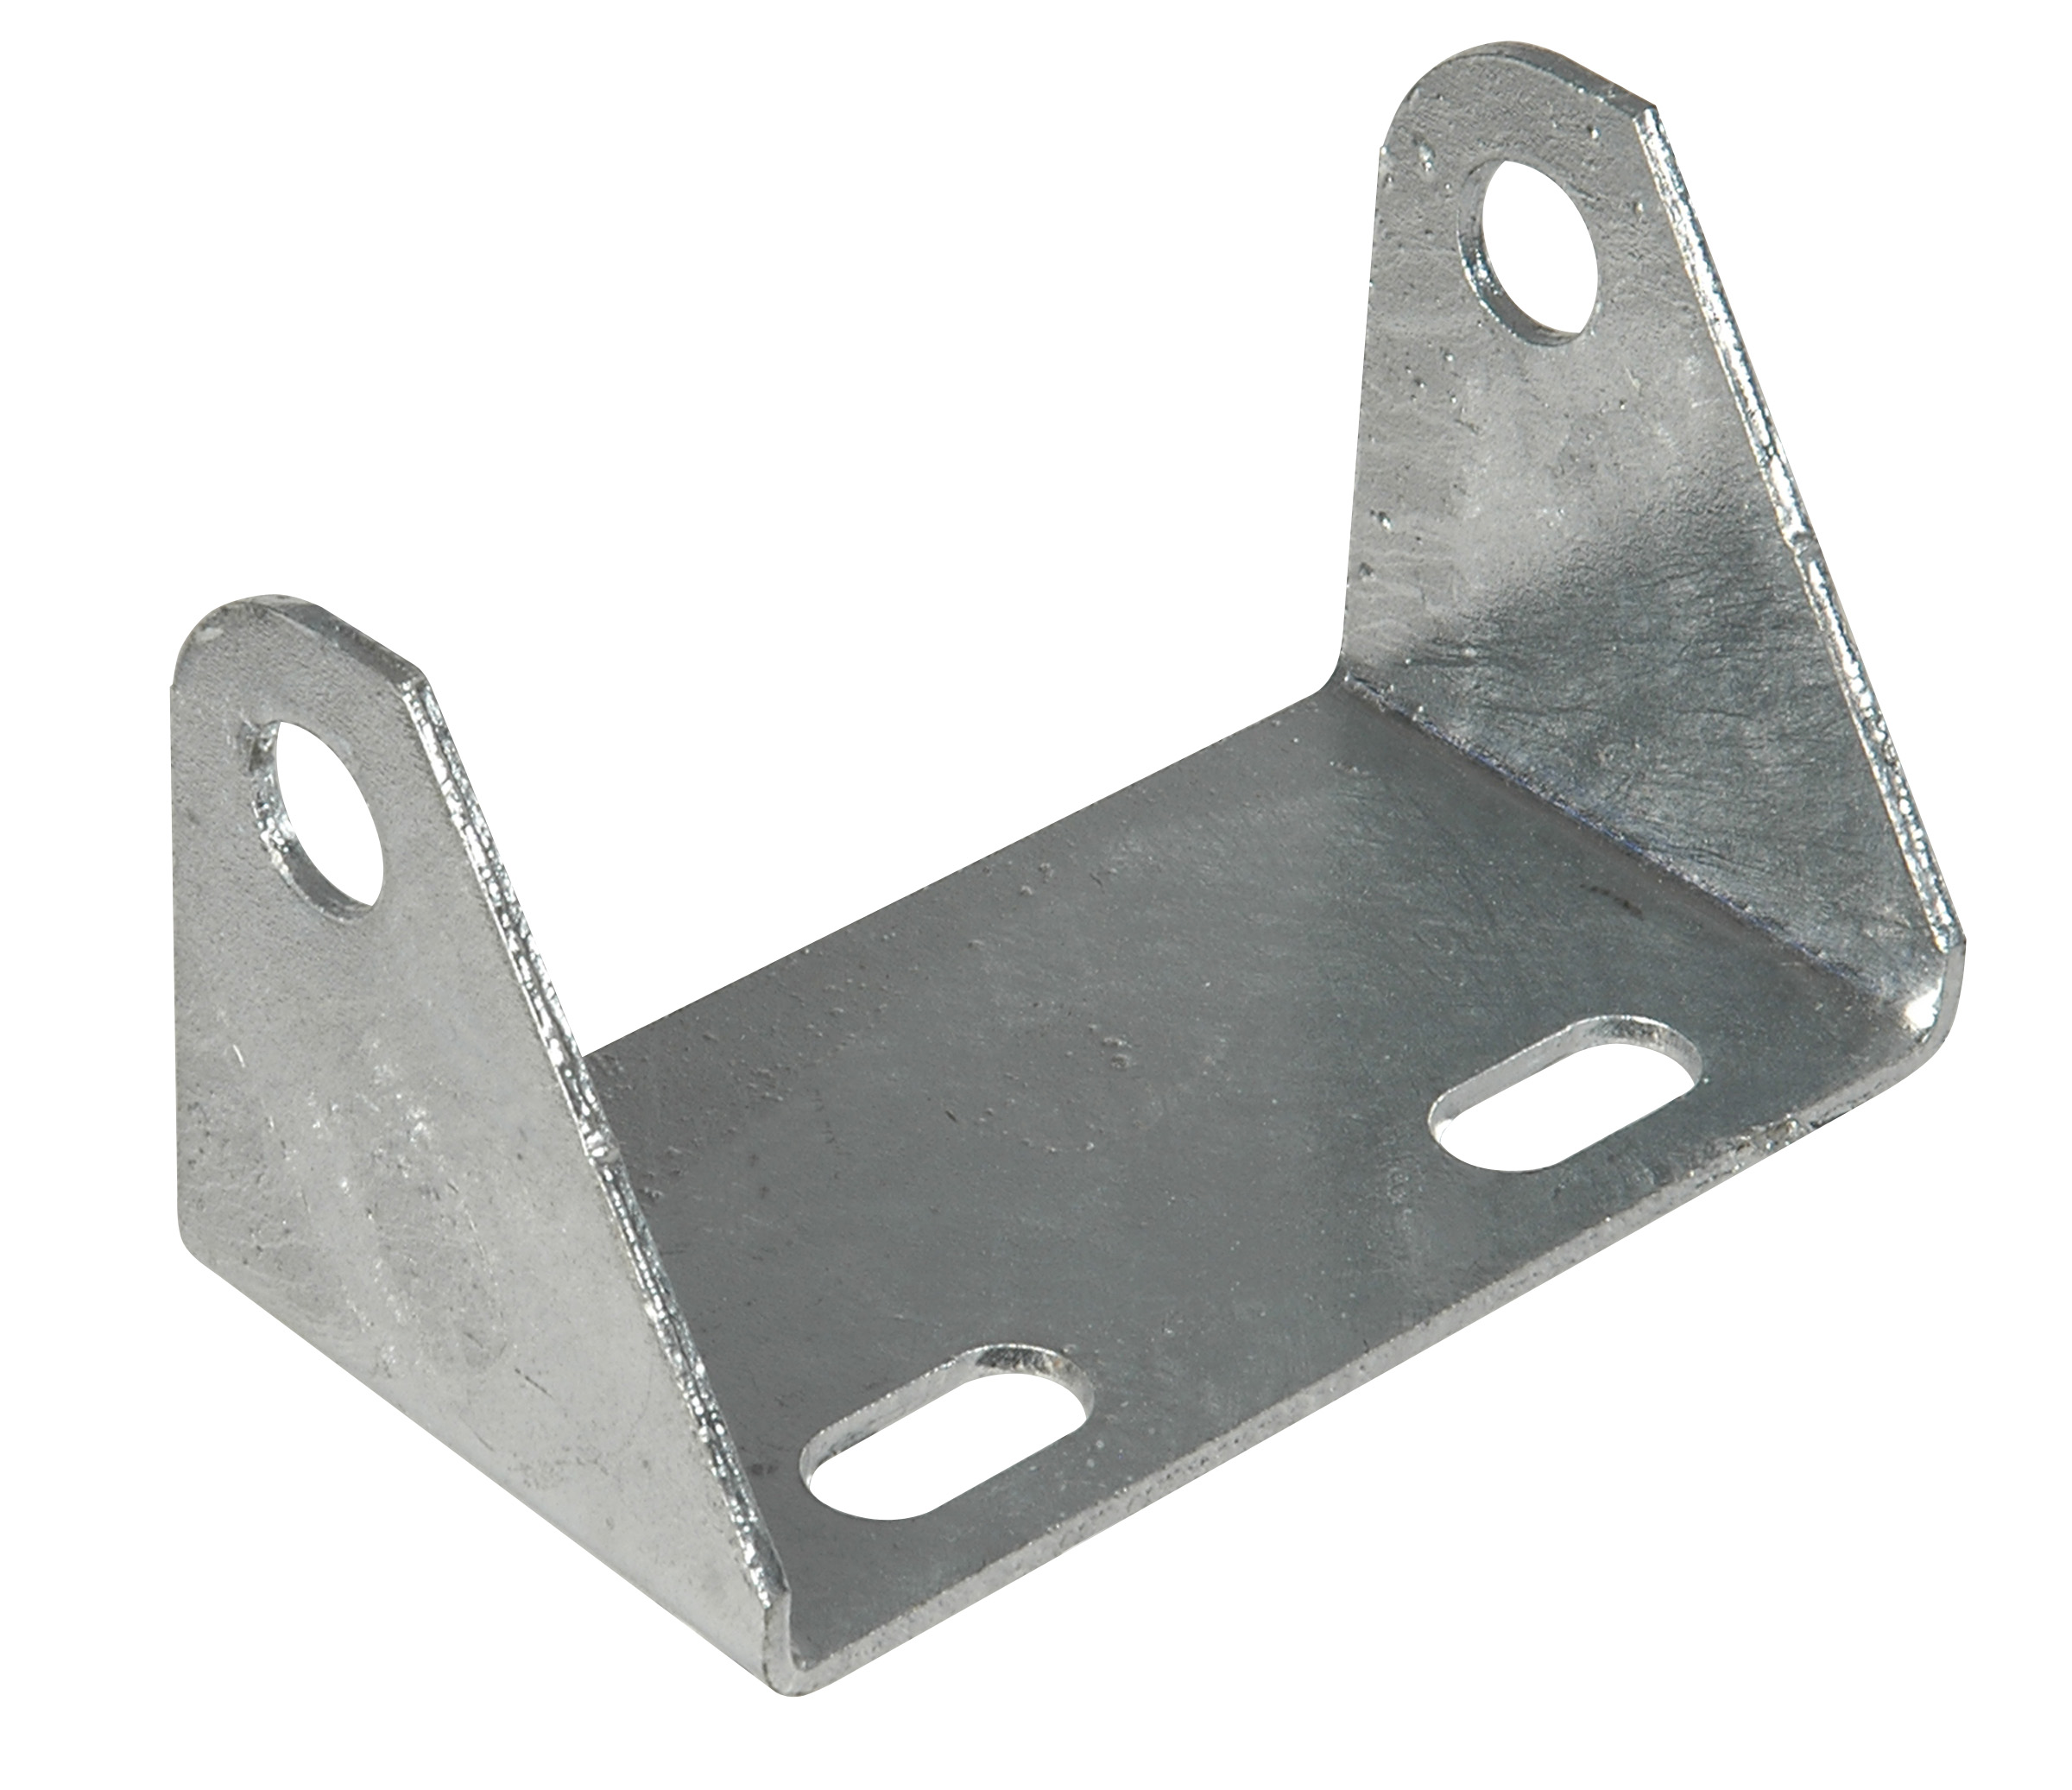 "Stationary Keel Roller Bracket For 3"" Tongue"